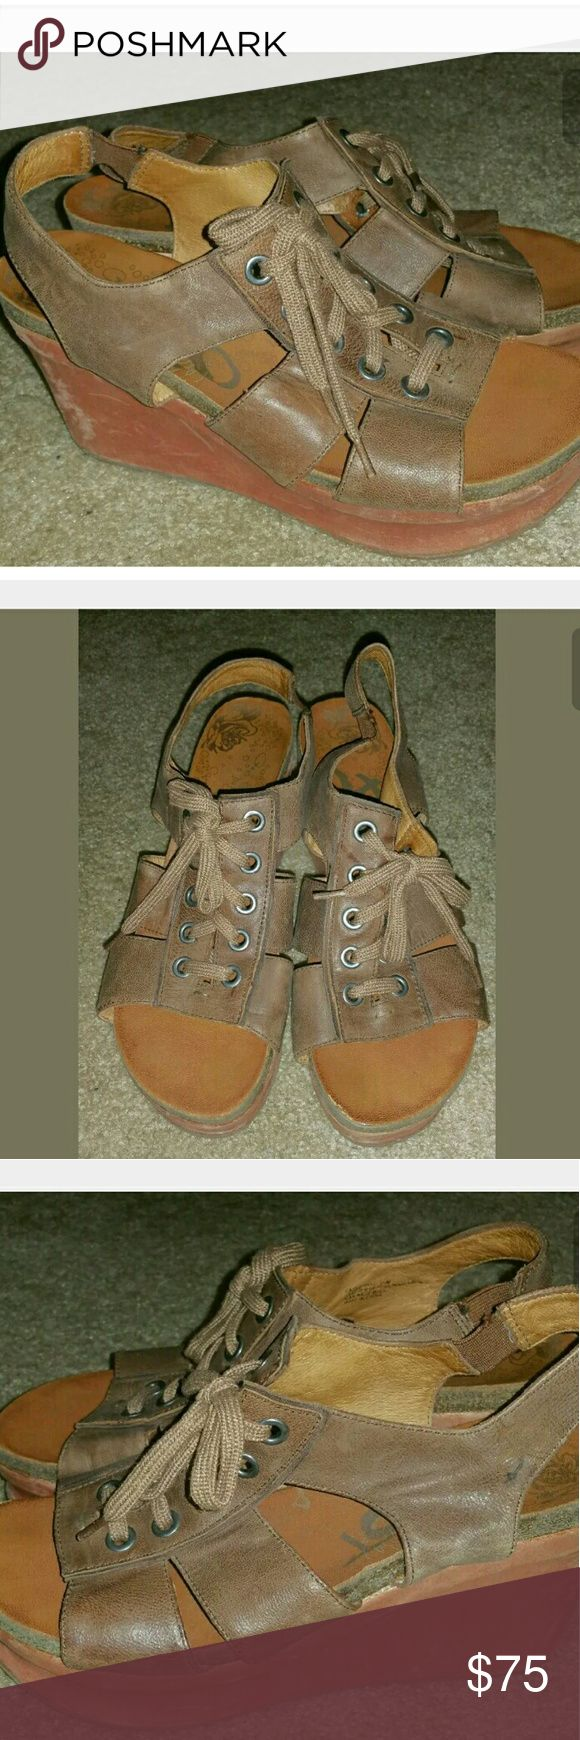 OTBT Lace Up Wedge Sandals 9.5 Light brown leather lace up wedge sandals, size 9.5. OTBT  Shoes Wedges